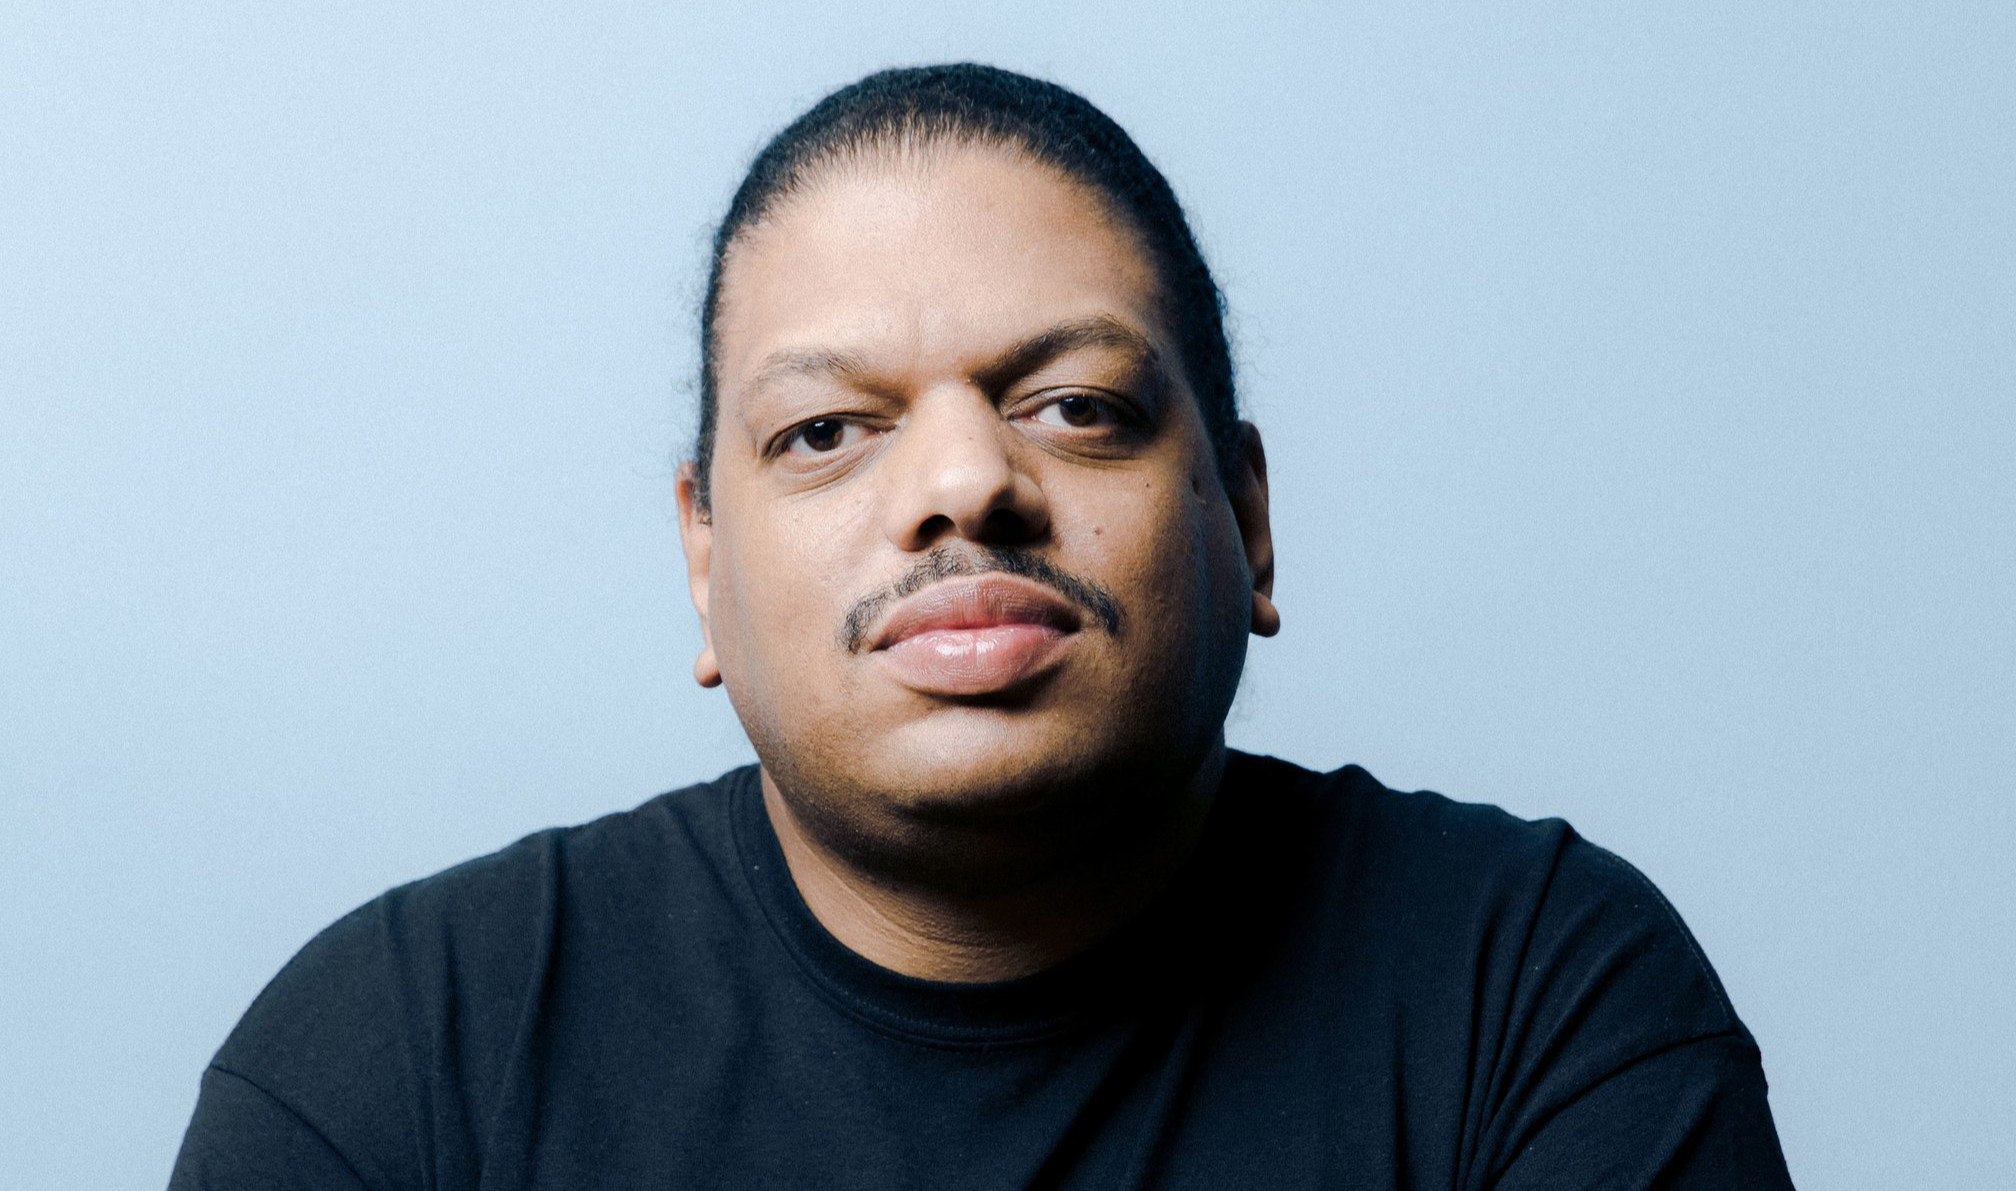 House-Legende Kerri Chandler verschenkt 43 unreleaste und vinyl-only Tracks